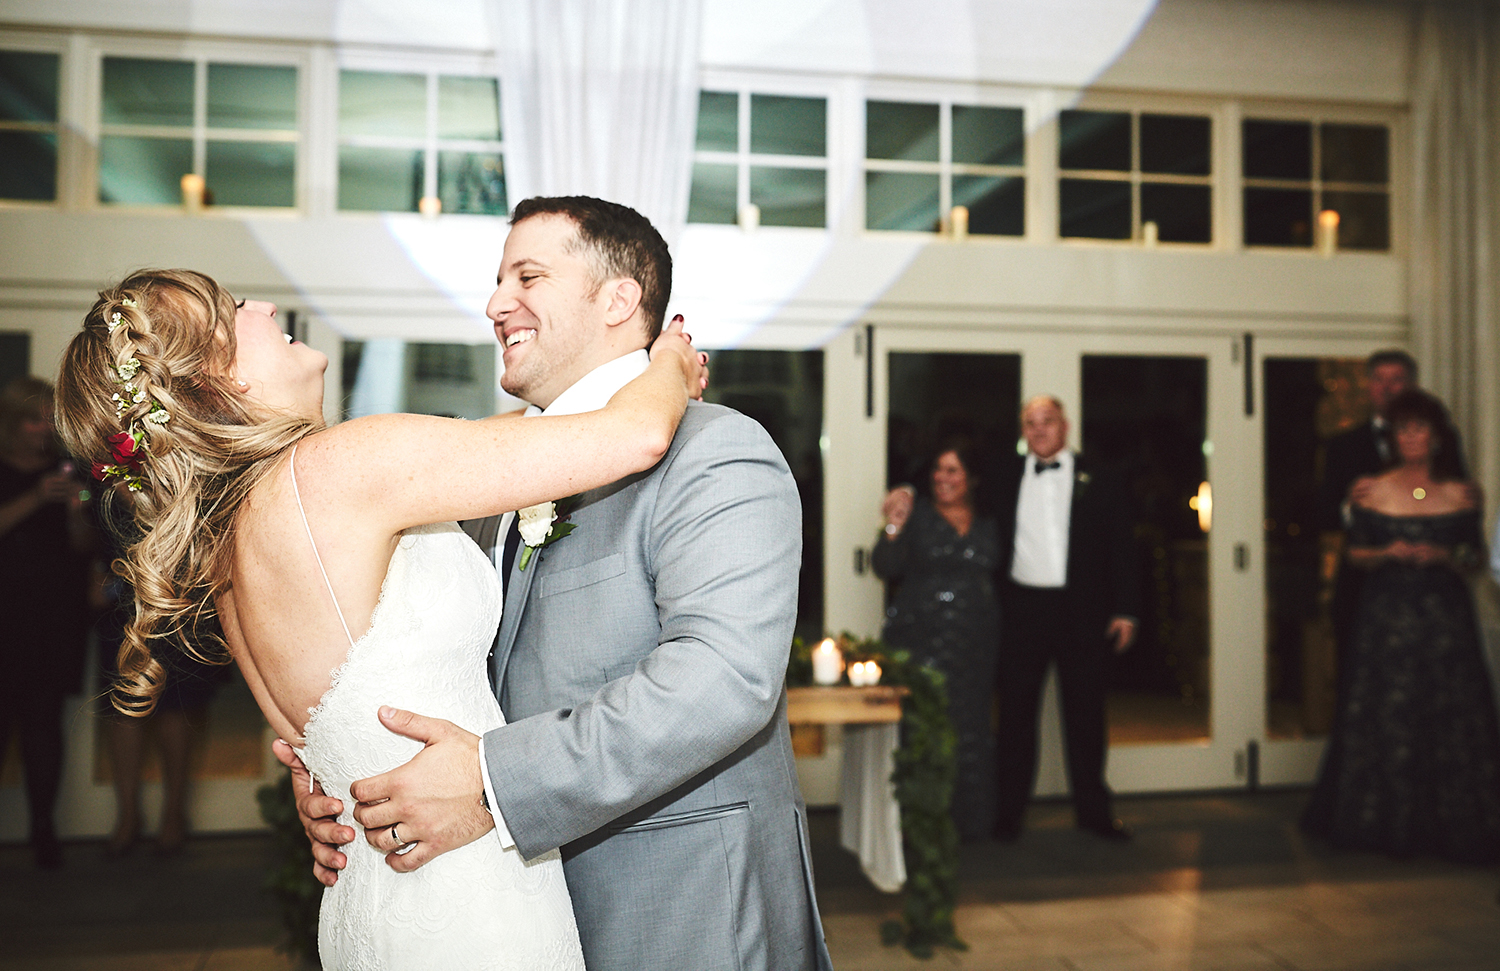 181013_IndianTrailClubFallWeddingPhotography_NJWeddingPhotographer_By_BriJohnsonWeddings_0133.jpg